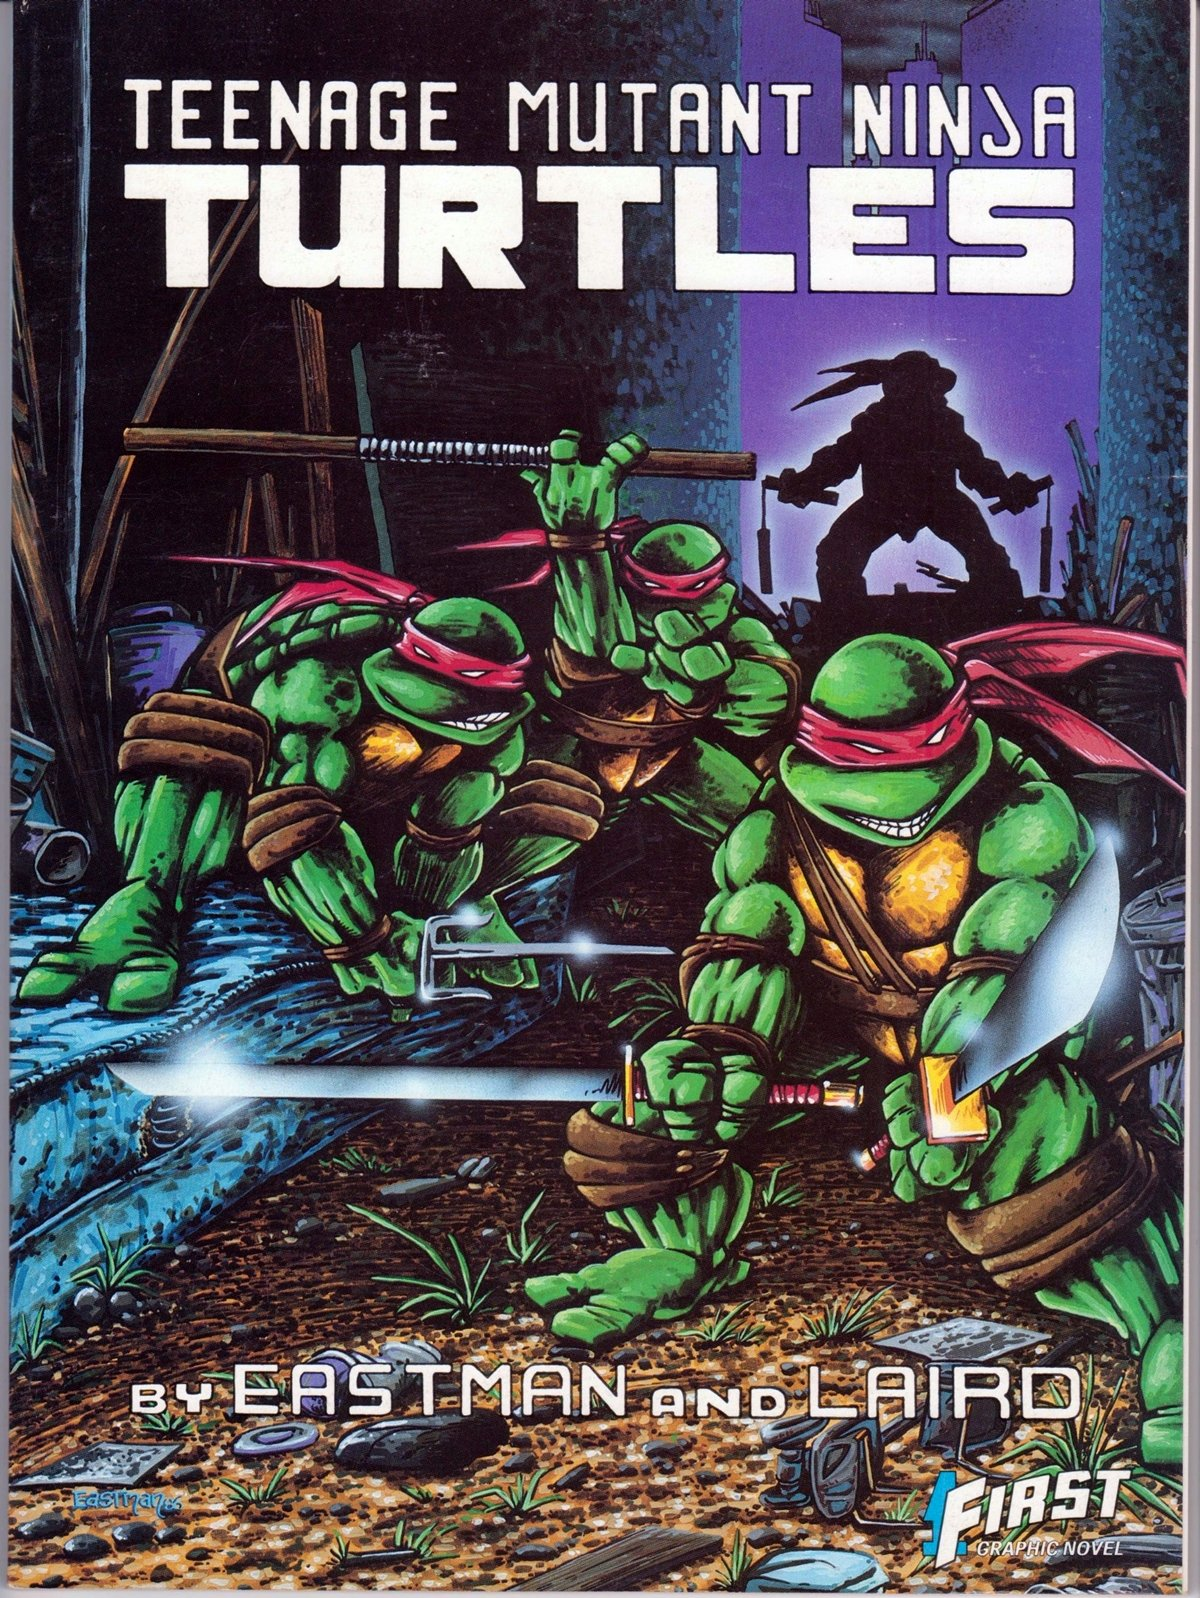 2 14 12 Things You Probably Didn't Know About The Teenage Mutant Ninja Turtles